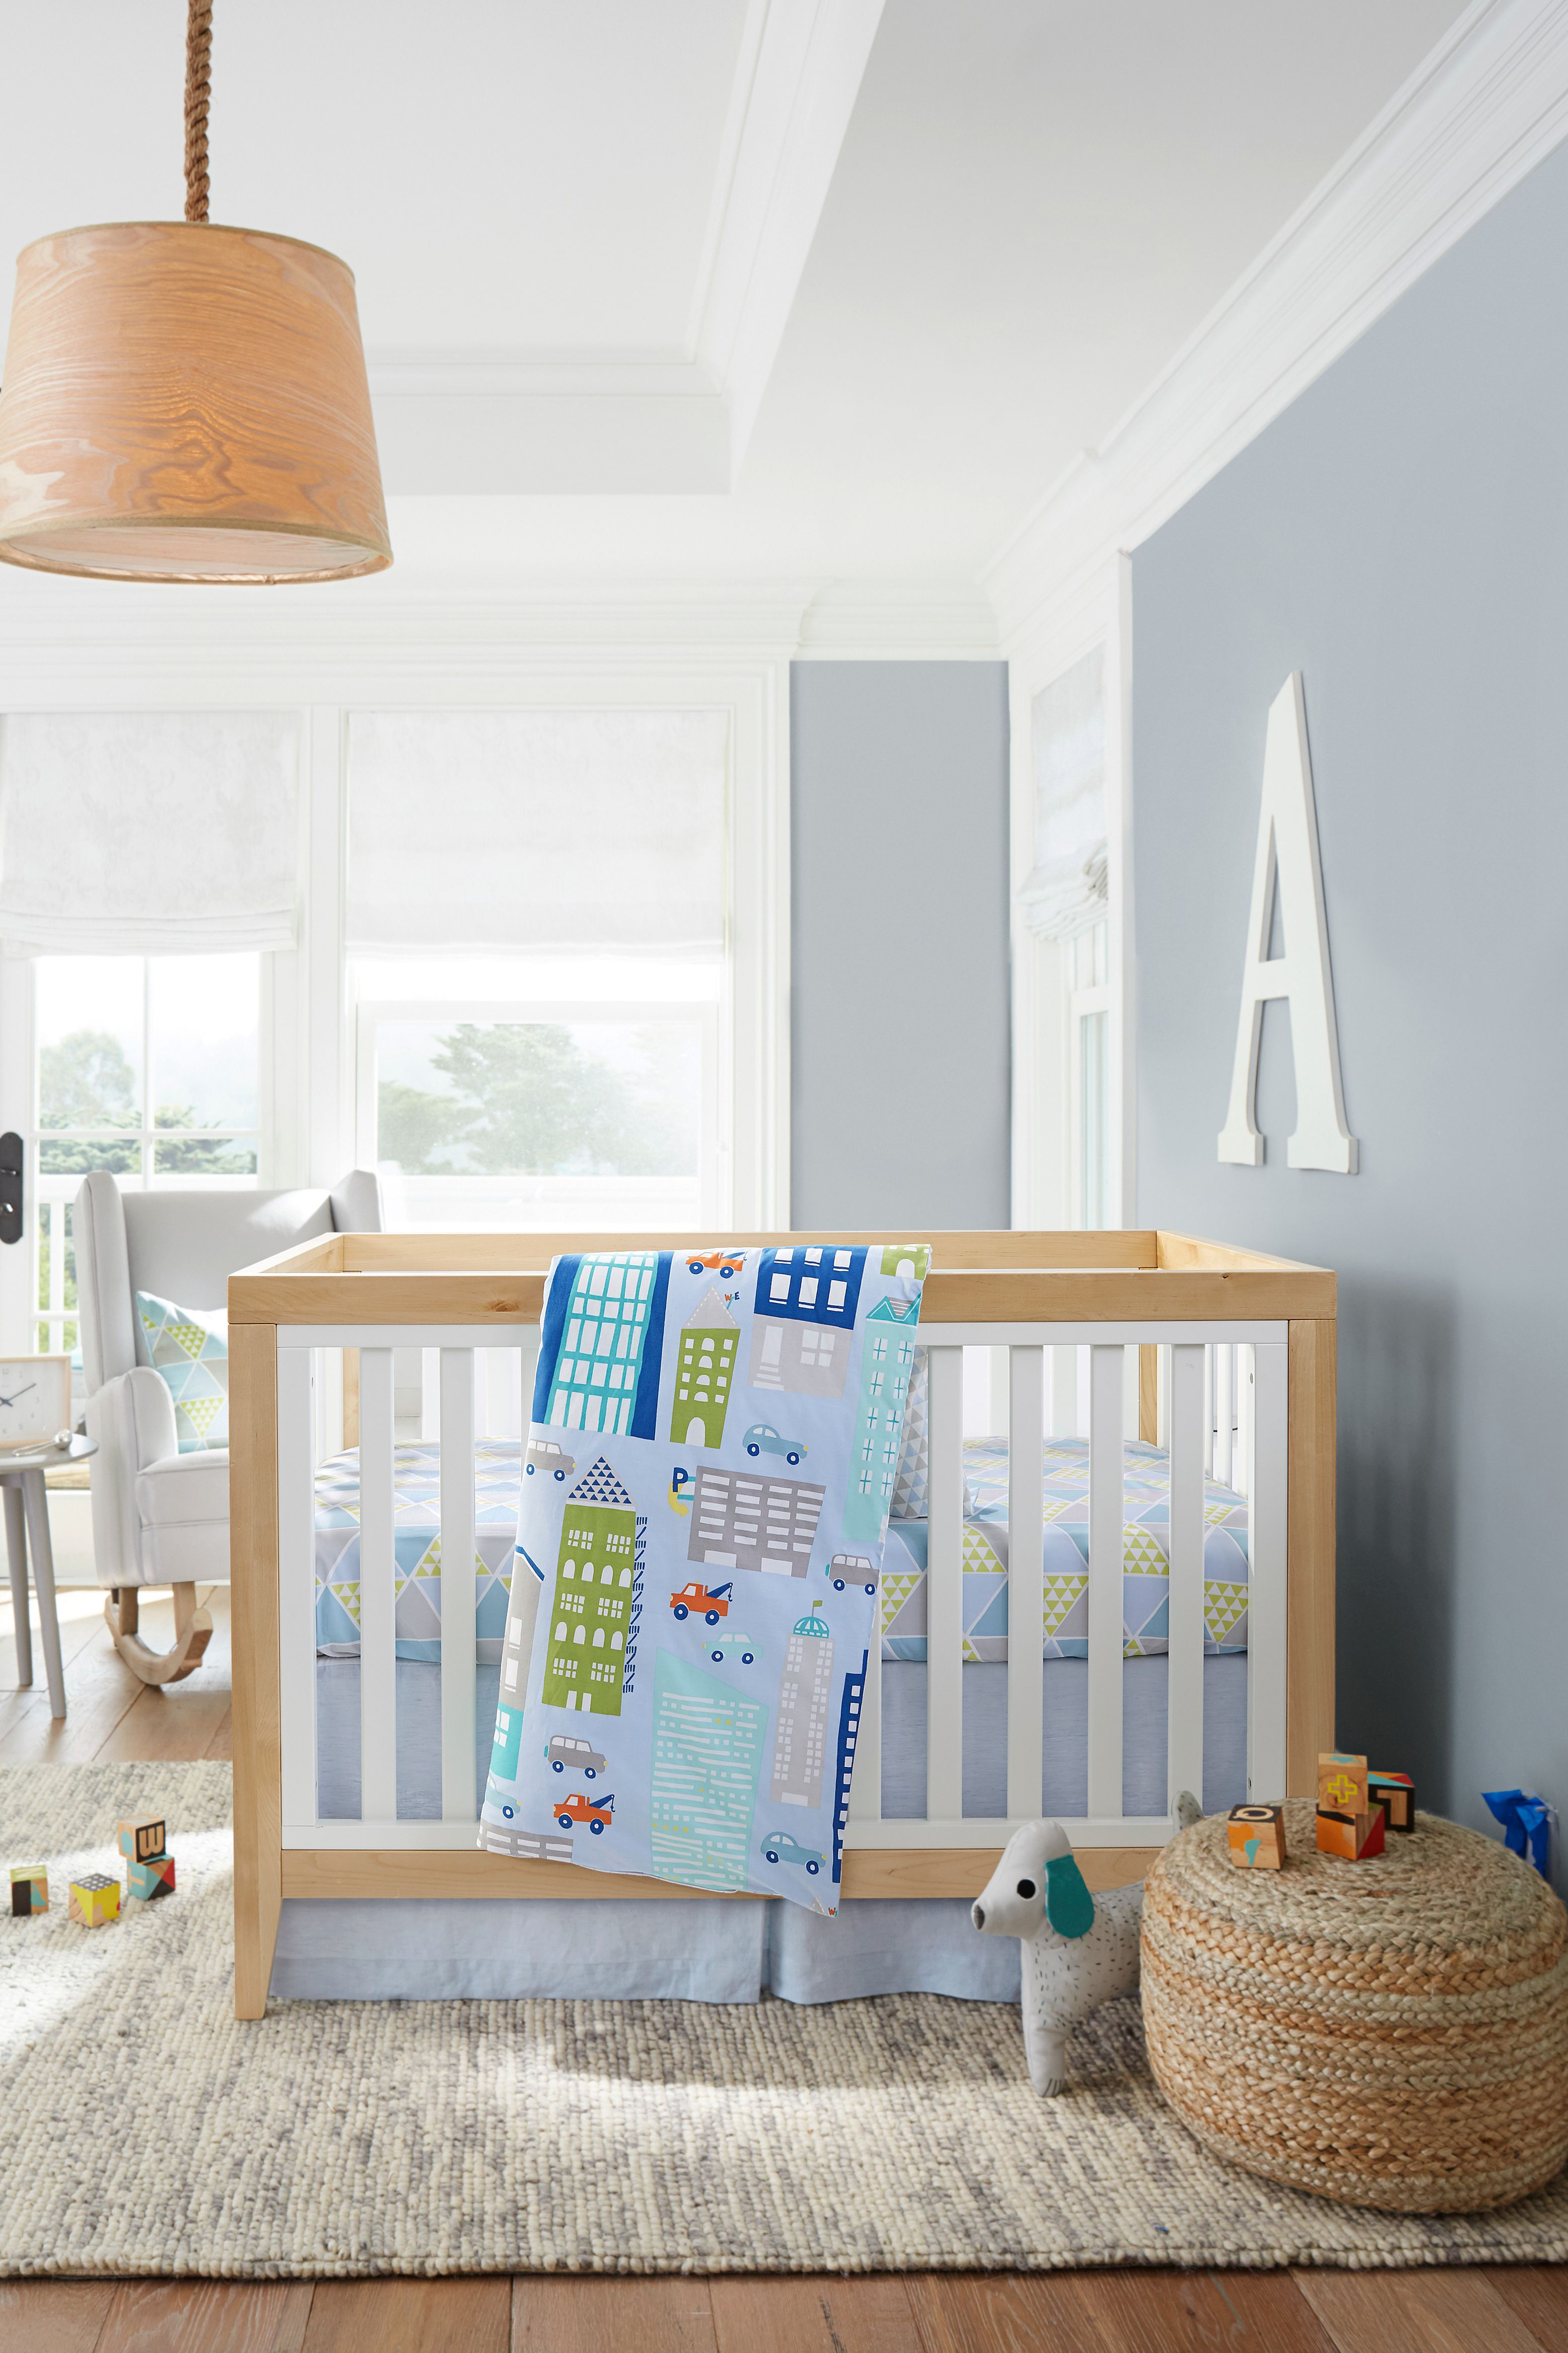 Baby Boy Bedroom Ideas: There's Always Room To Dream! Designing A Nursery Is A Big